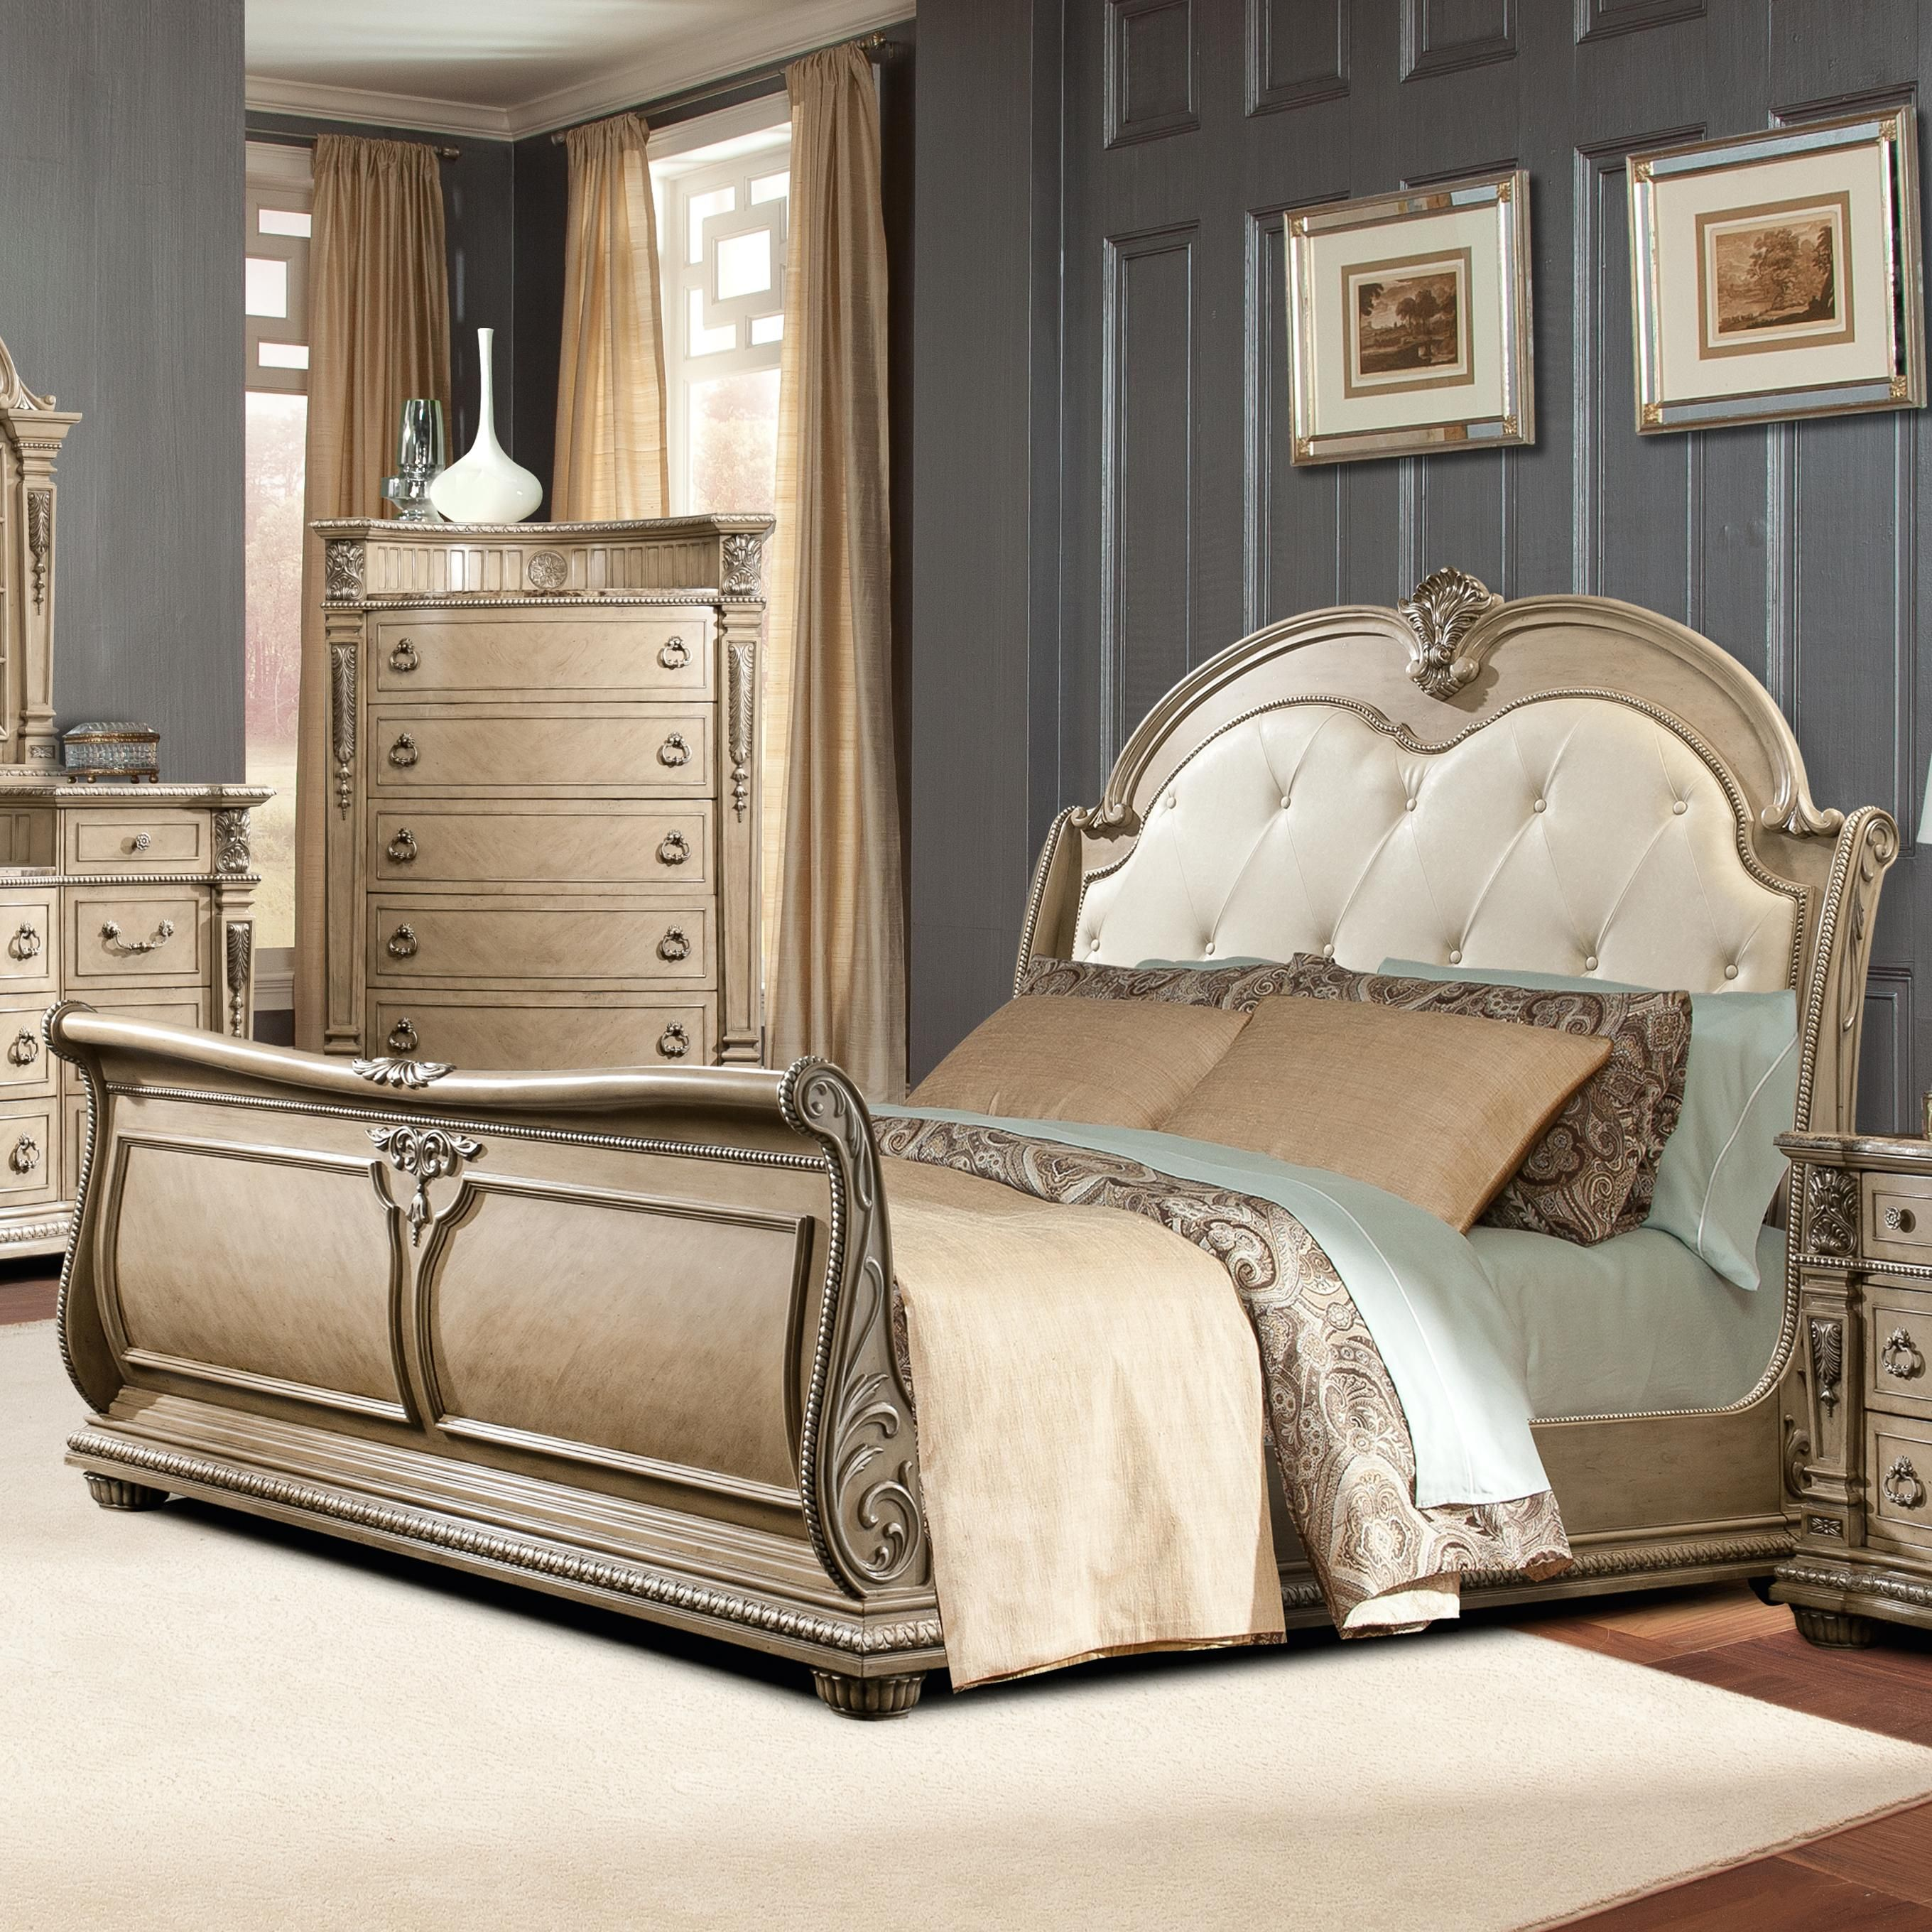 Monaco King Sleigh Bed by Davis International | home sweet home ...